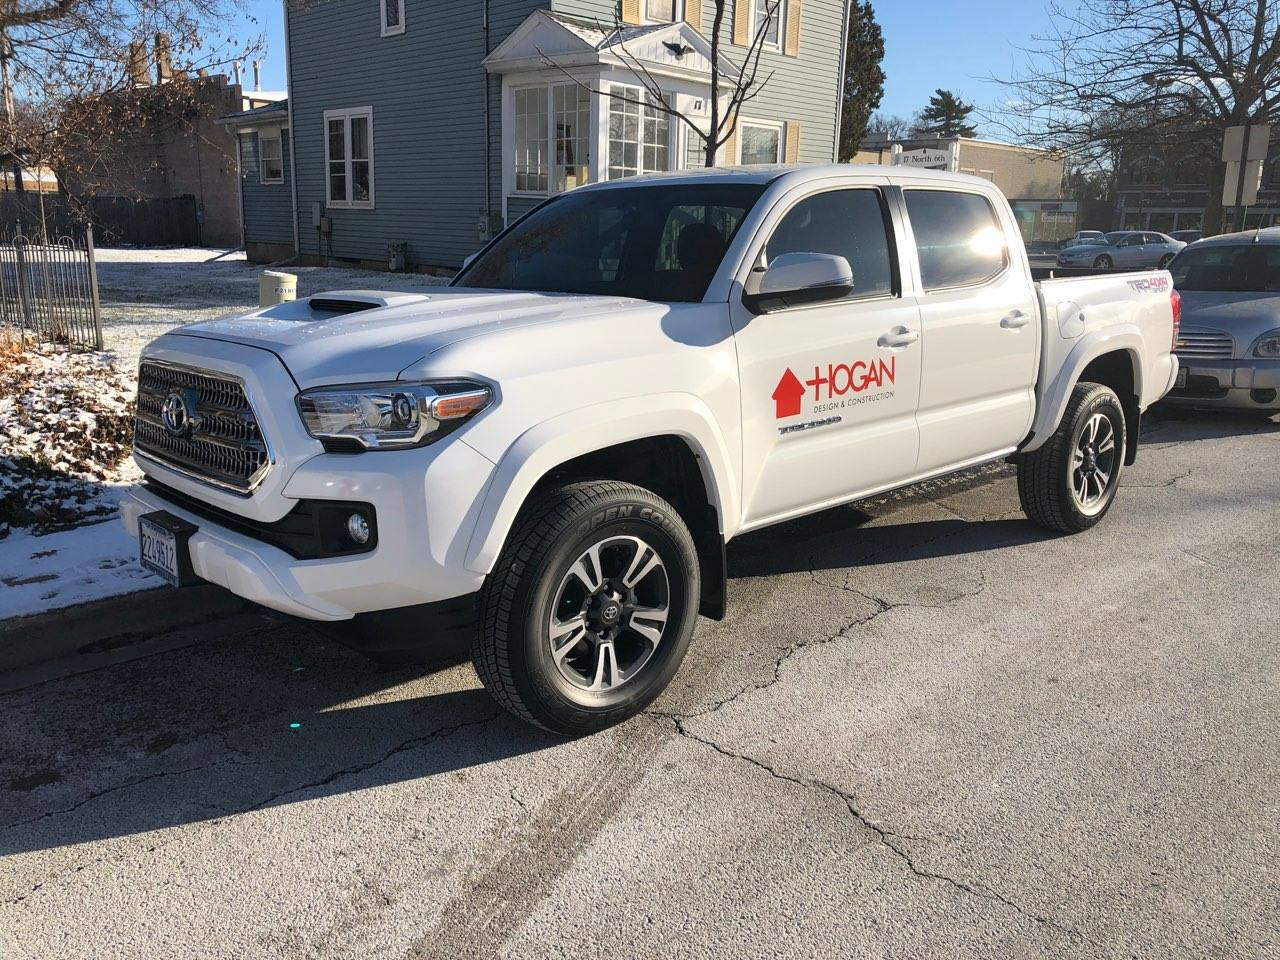 Toyota Tundra truck with red Hogan logo on side